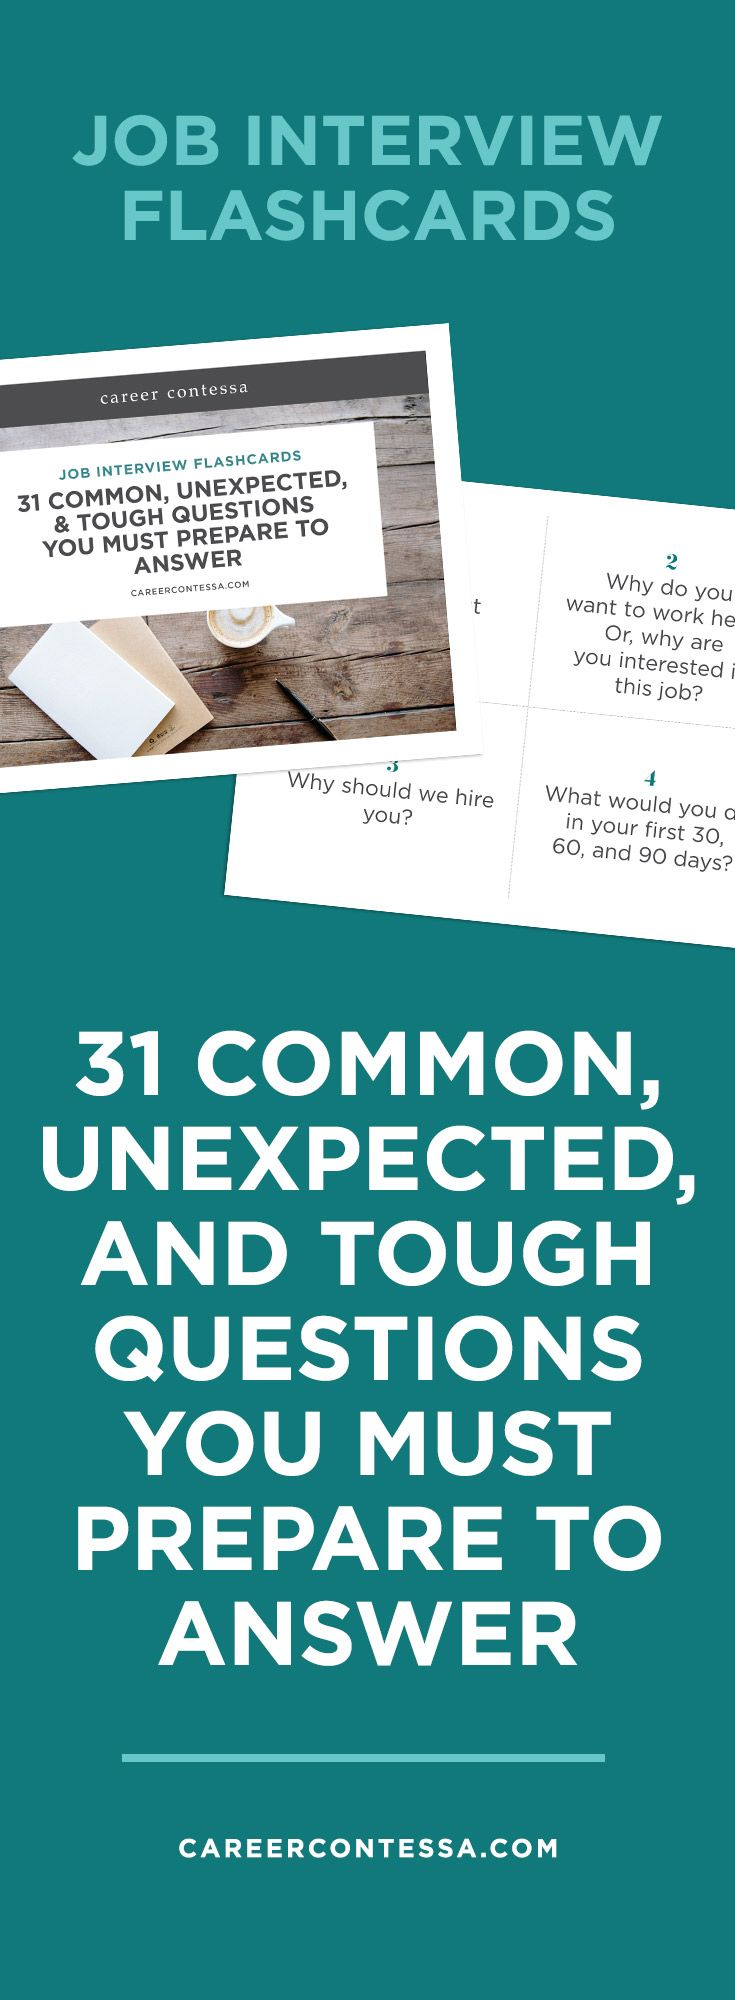 You never know exactly what to expect in a job interview. That's why we've created 31 flashcards with possible interview questions—from the common to the weird. Use this deck to walk in interview-ready and own it. | CareerContessa.com